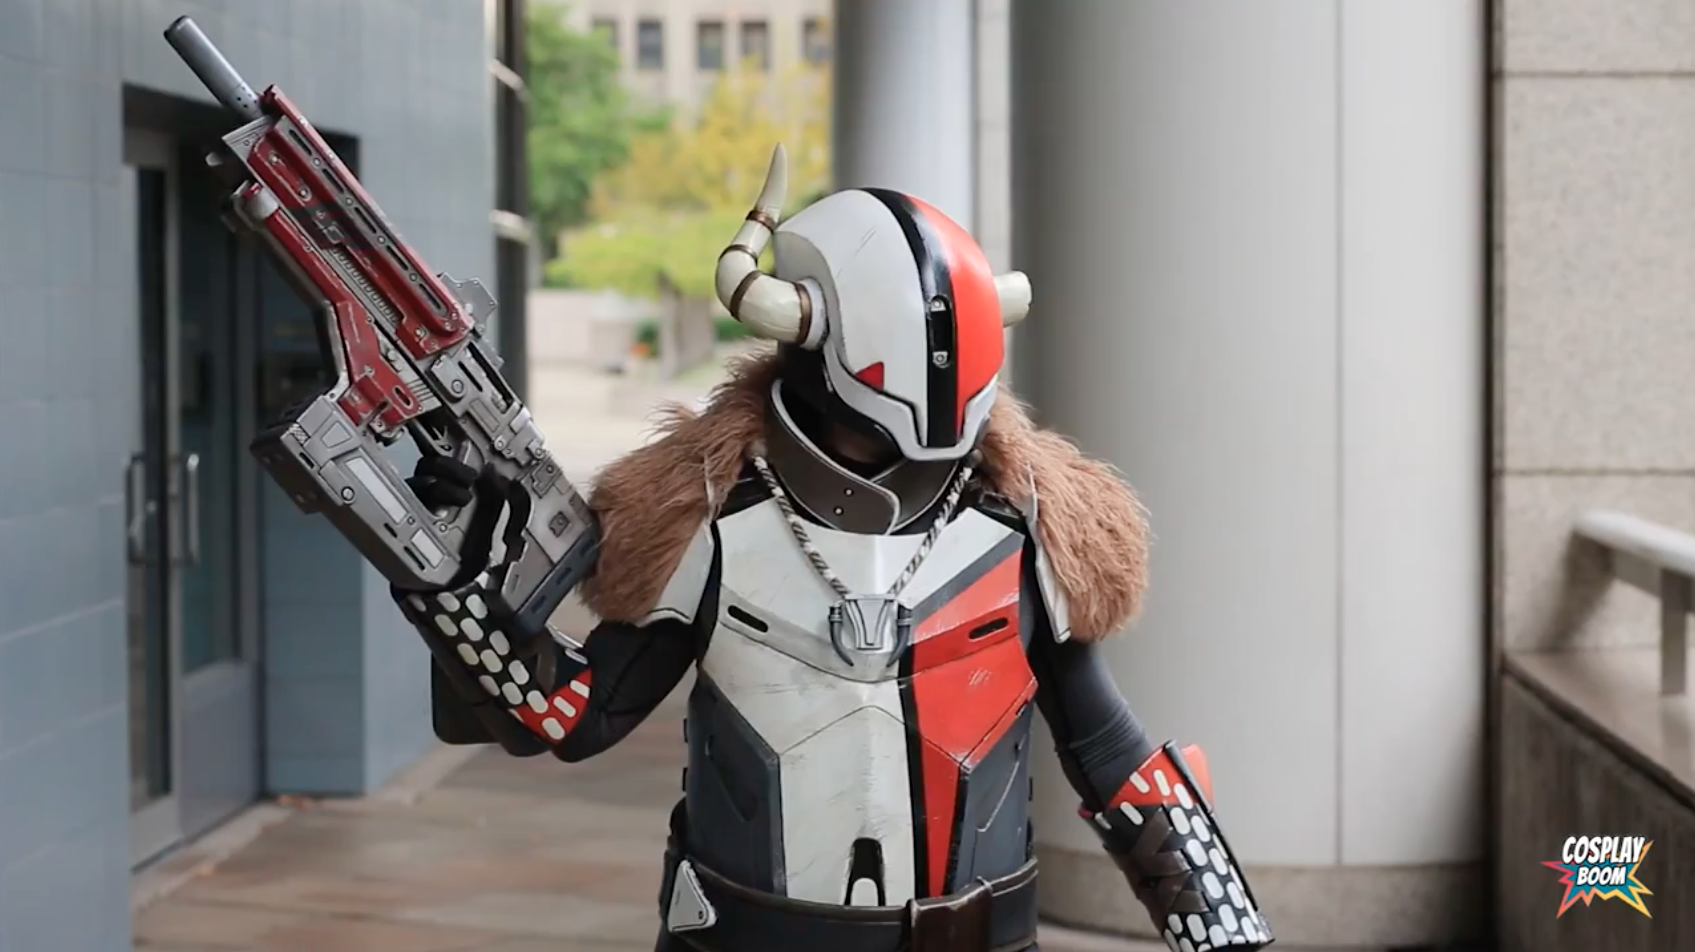 Lord Shaxx Is Ready to Judge Some Destiny Cosplay